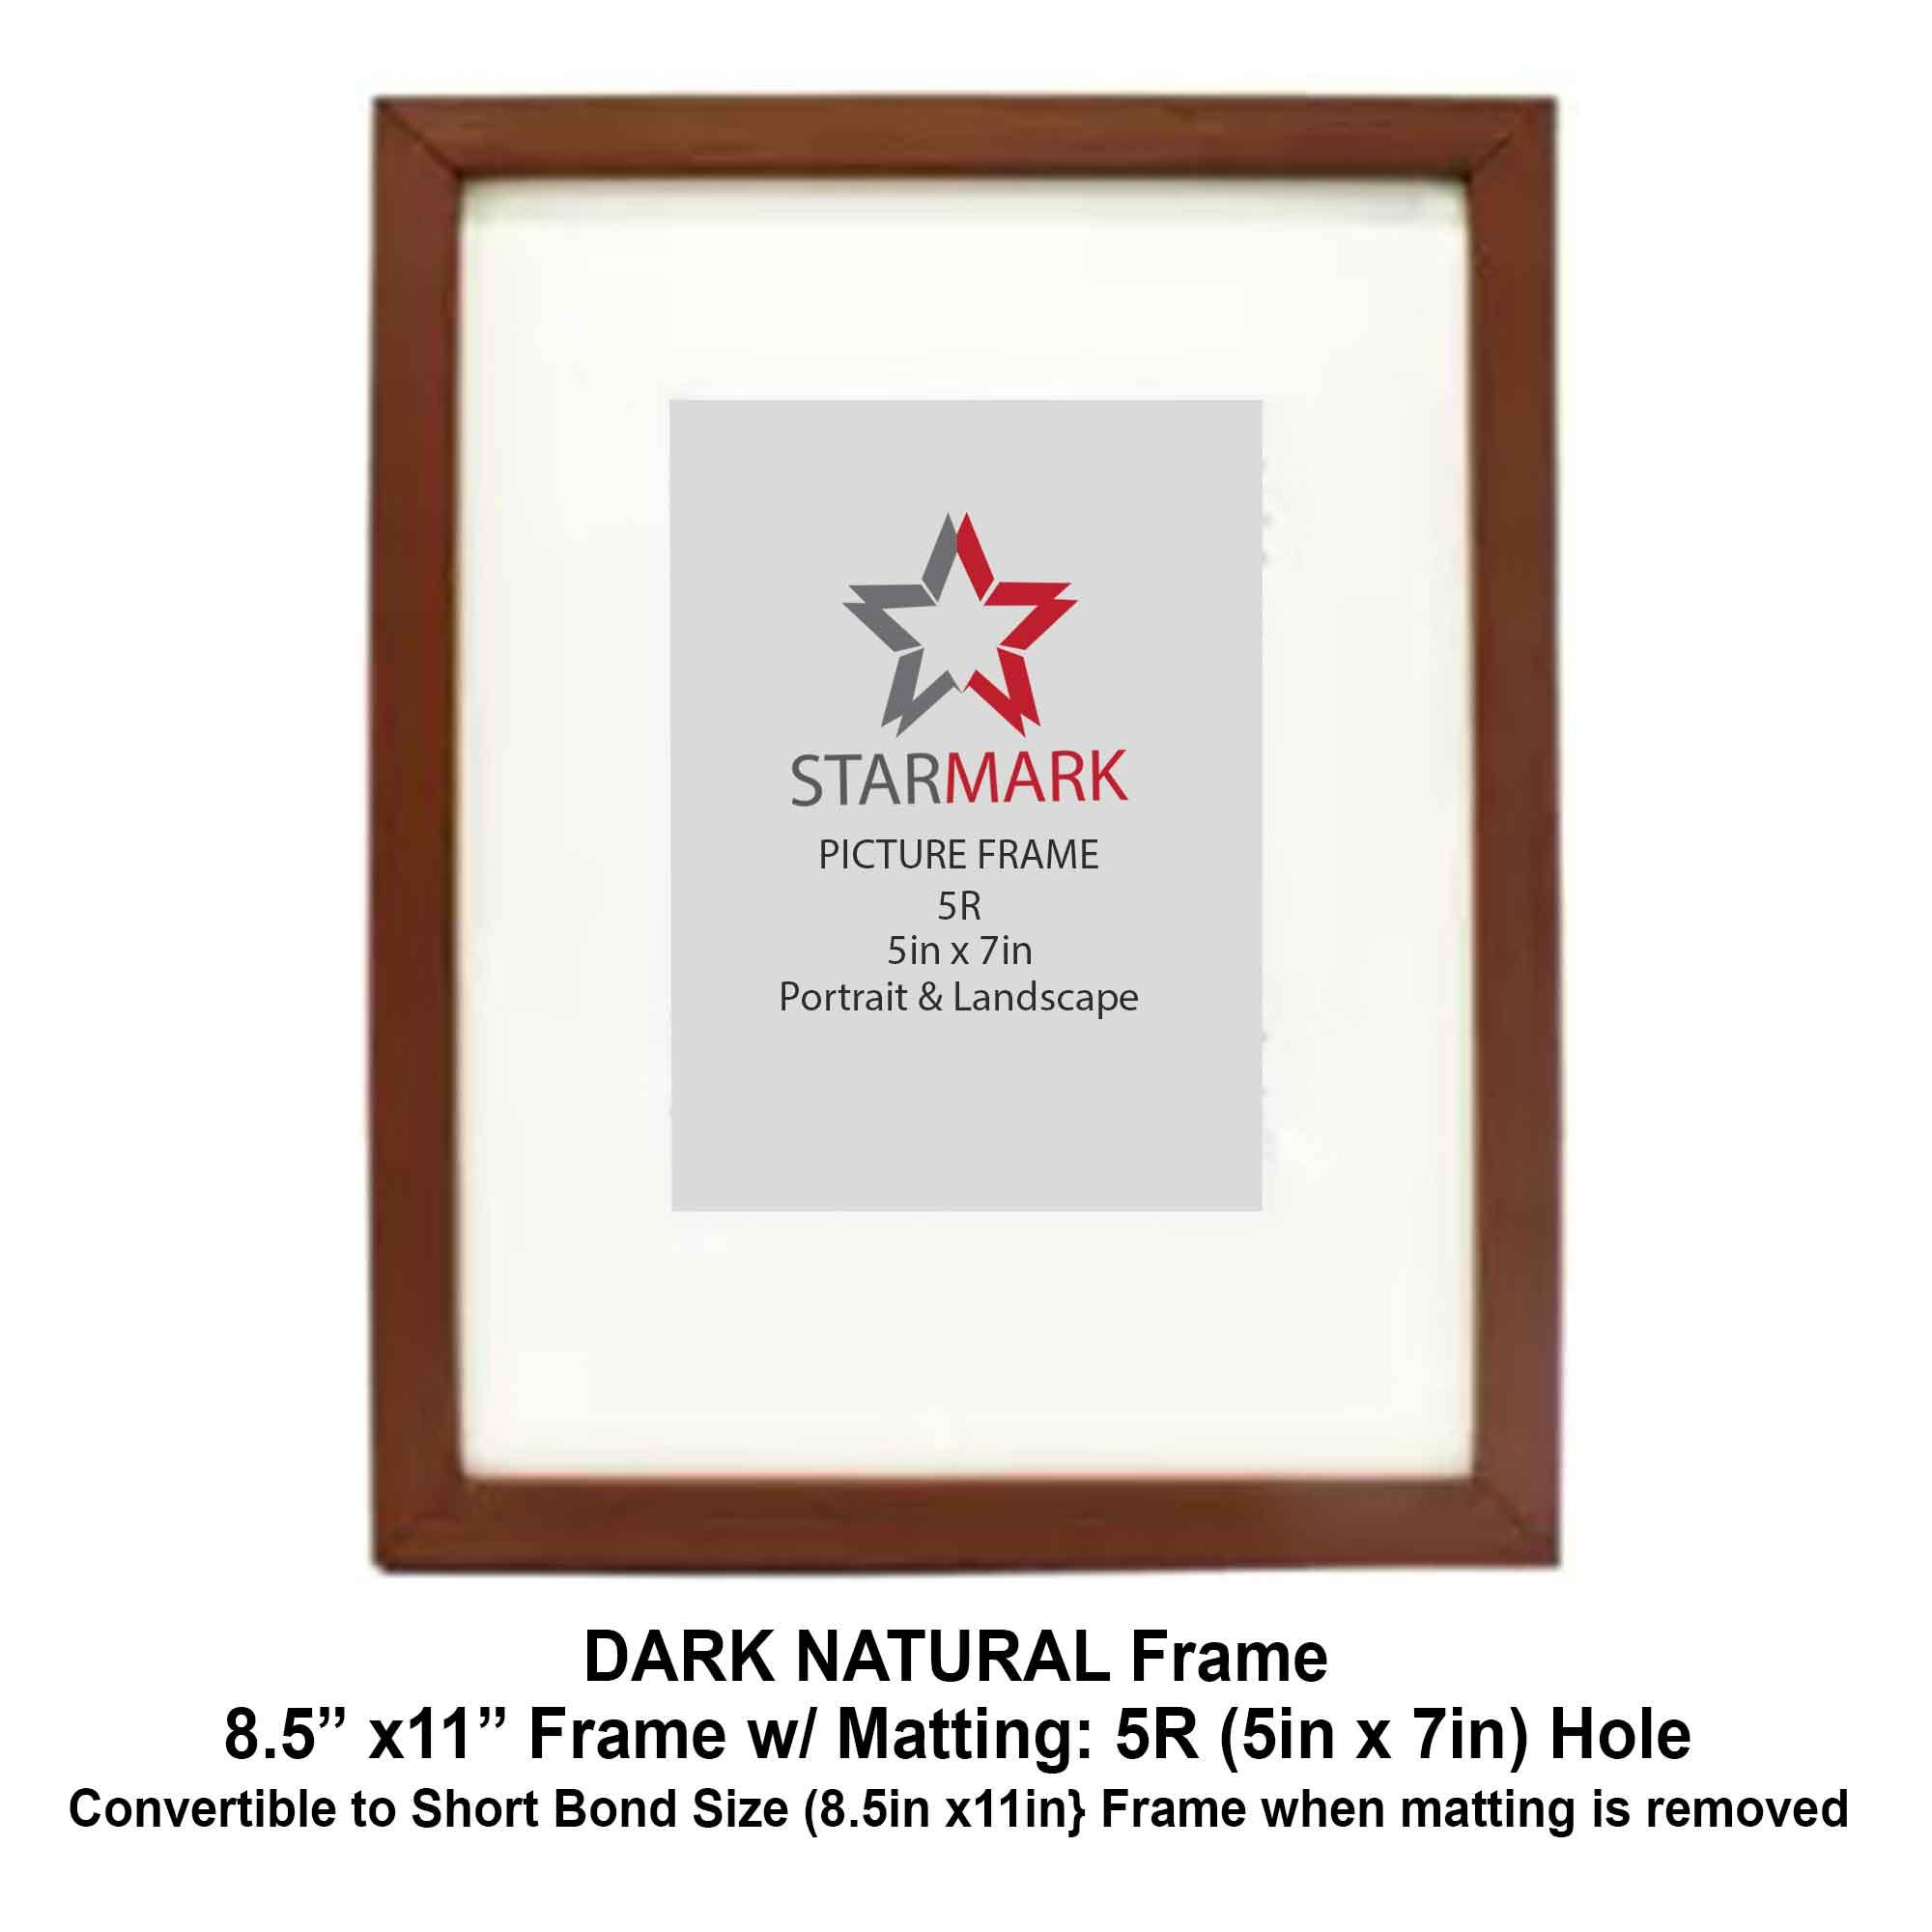 5d0fde6564e5 Starmark Picture Frame Frames 8.5x11 inches with Matting to 5R Photo - 5x7  inches -